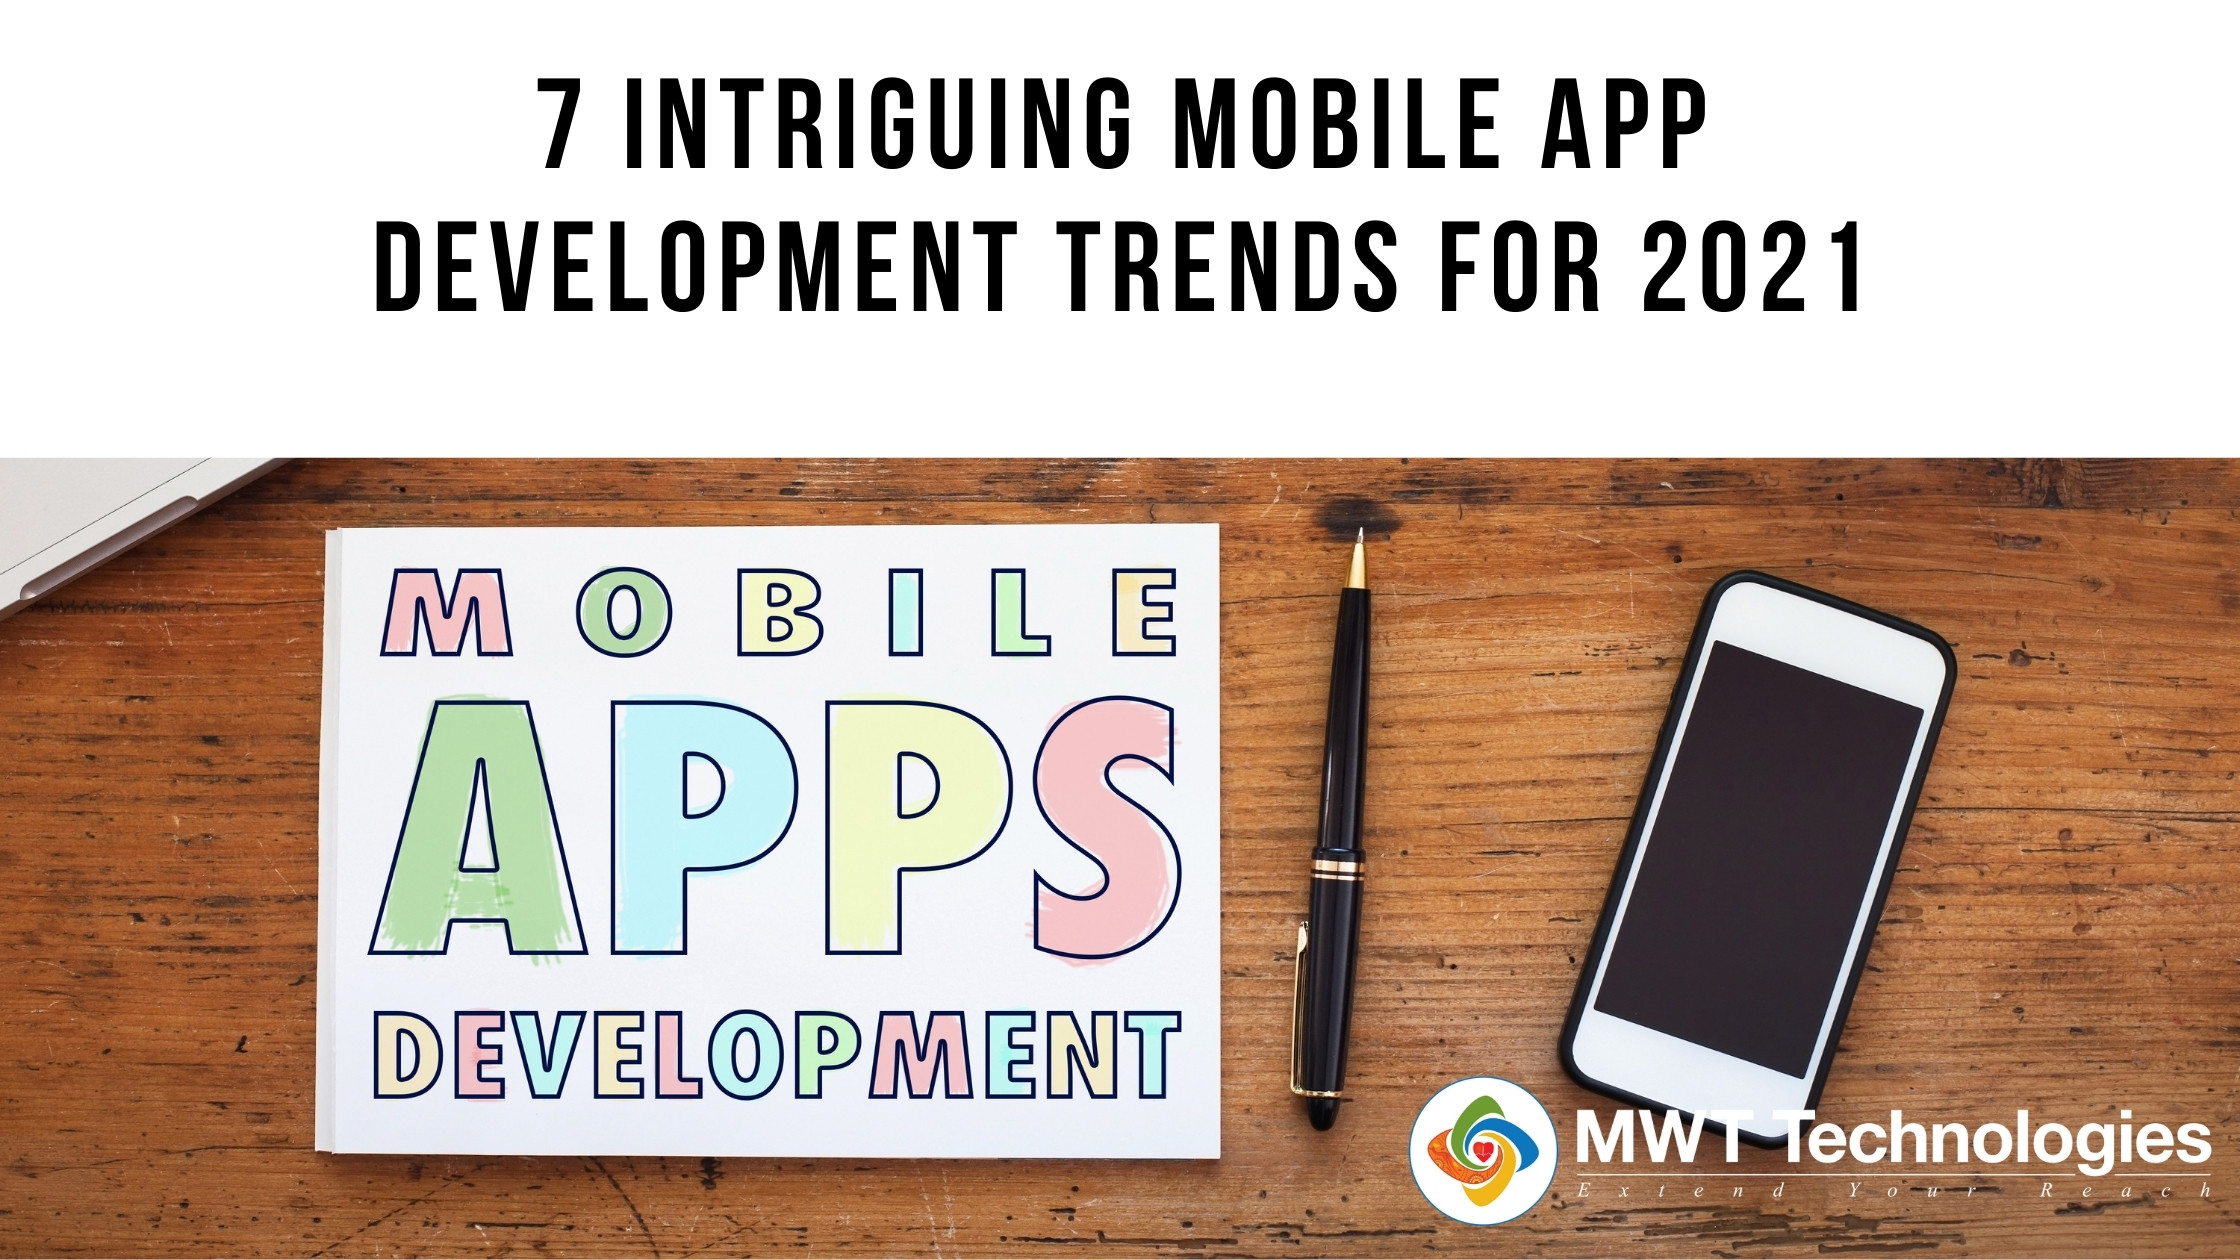 The Most Fascinating Mobile App Development Trends in 2021